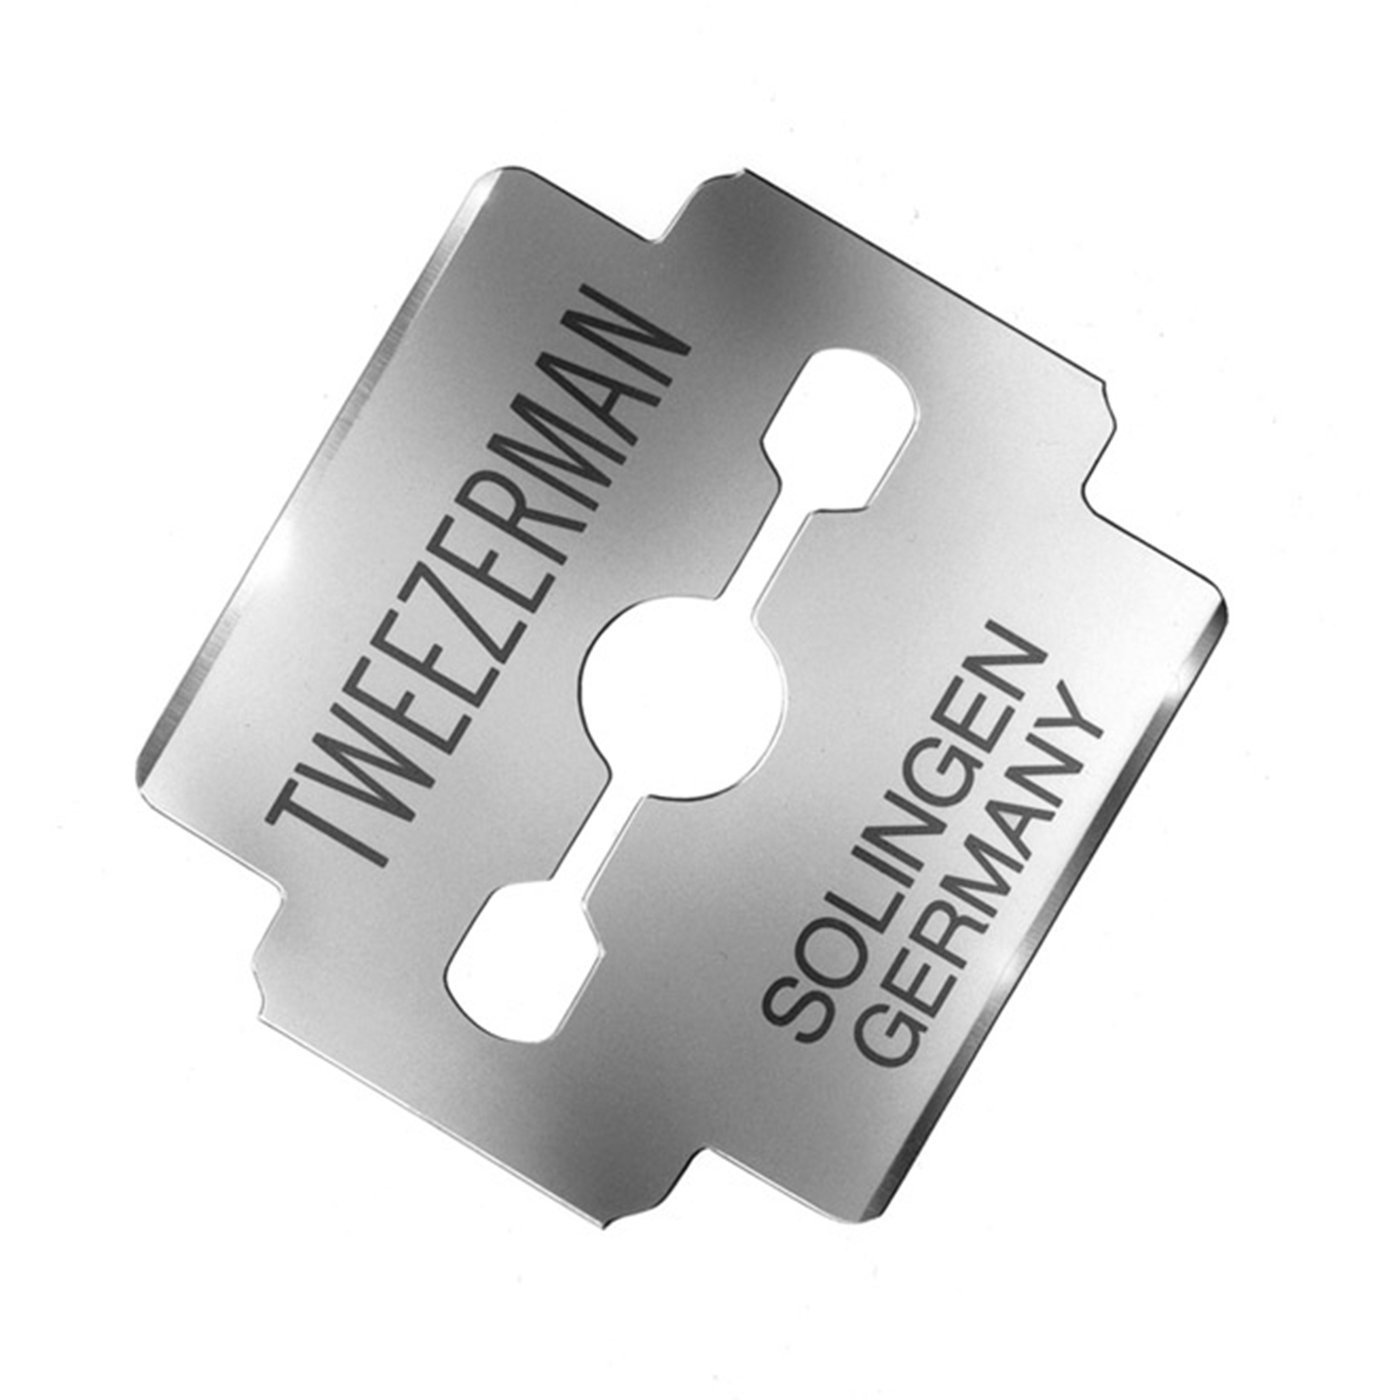 LTD Callus Shaver Blades, 20 blades. By Tweezerman